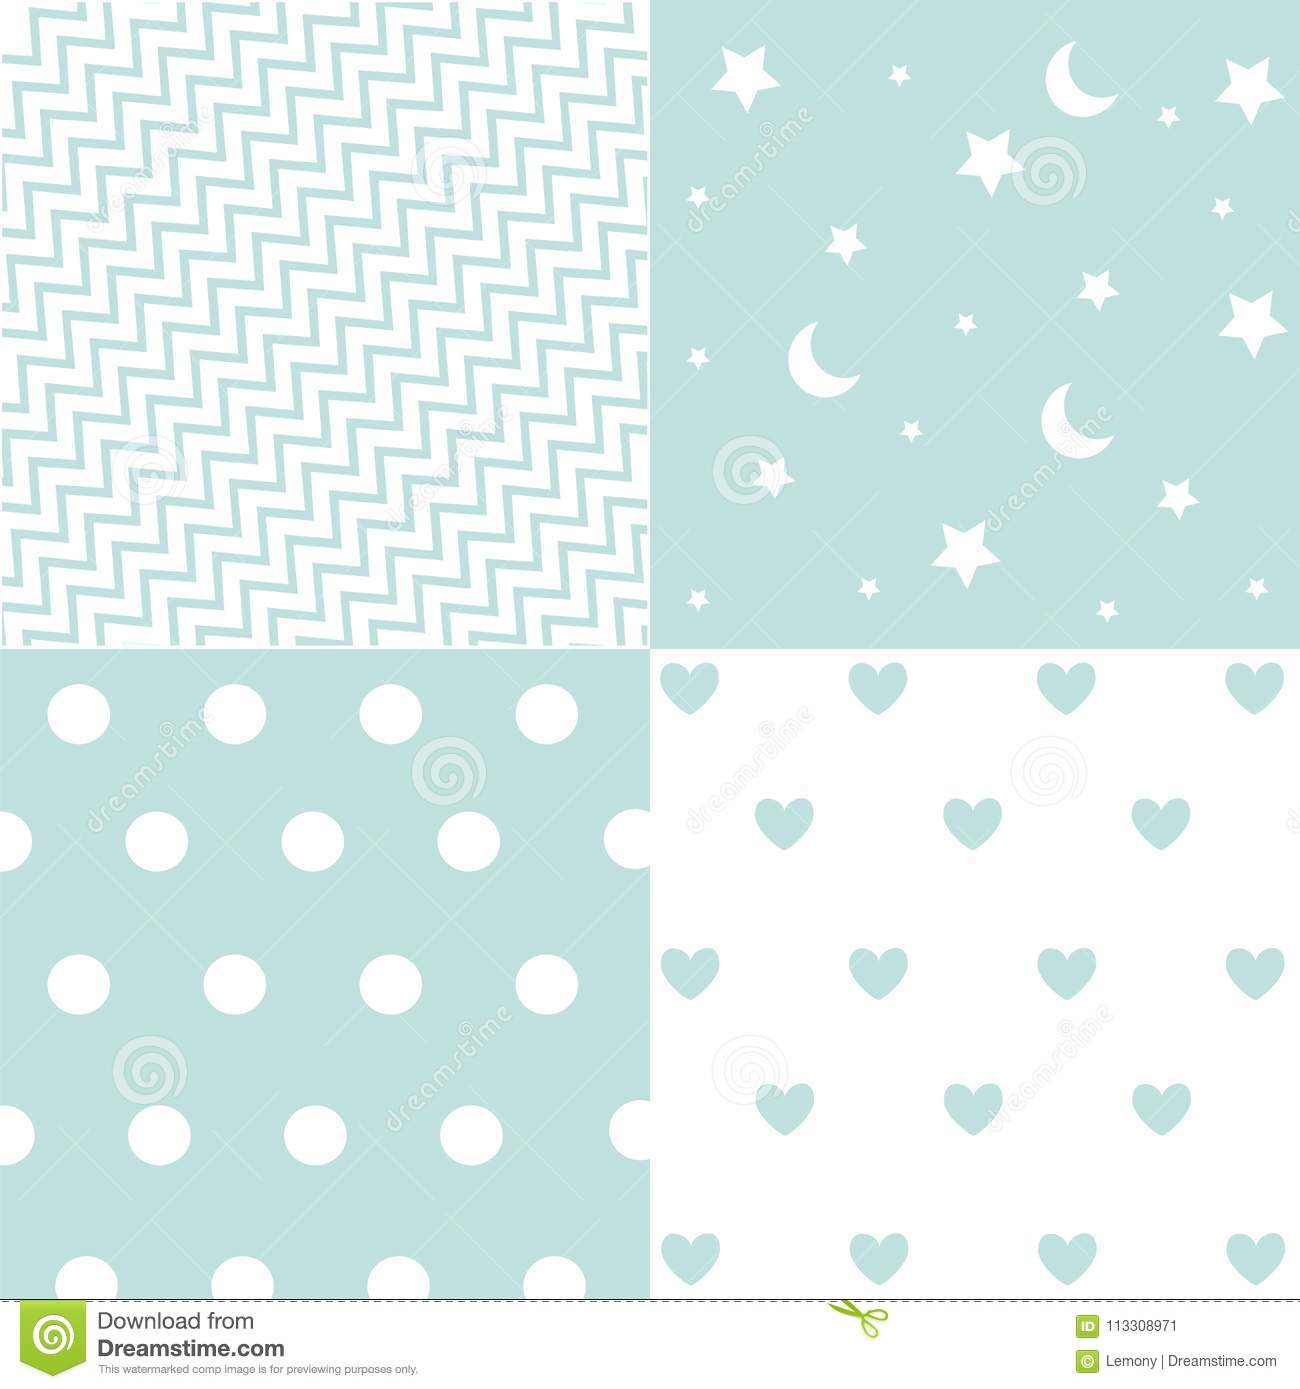 8bebb1a01e9b Cute Set Of Baby Boy Seamless Patterns With Fabric Textures Stock ...